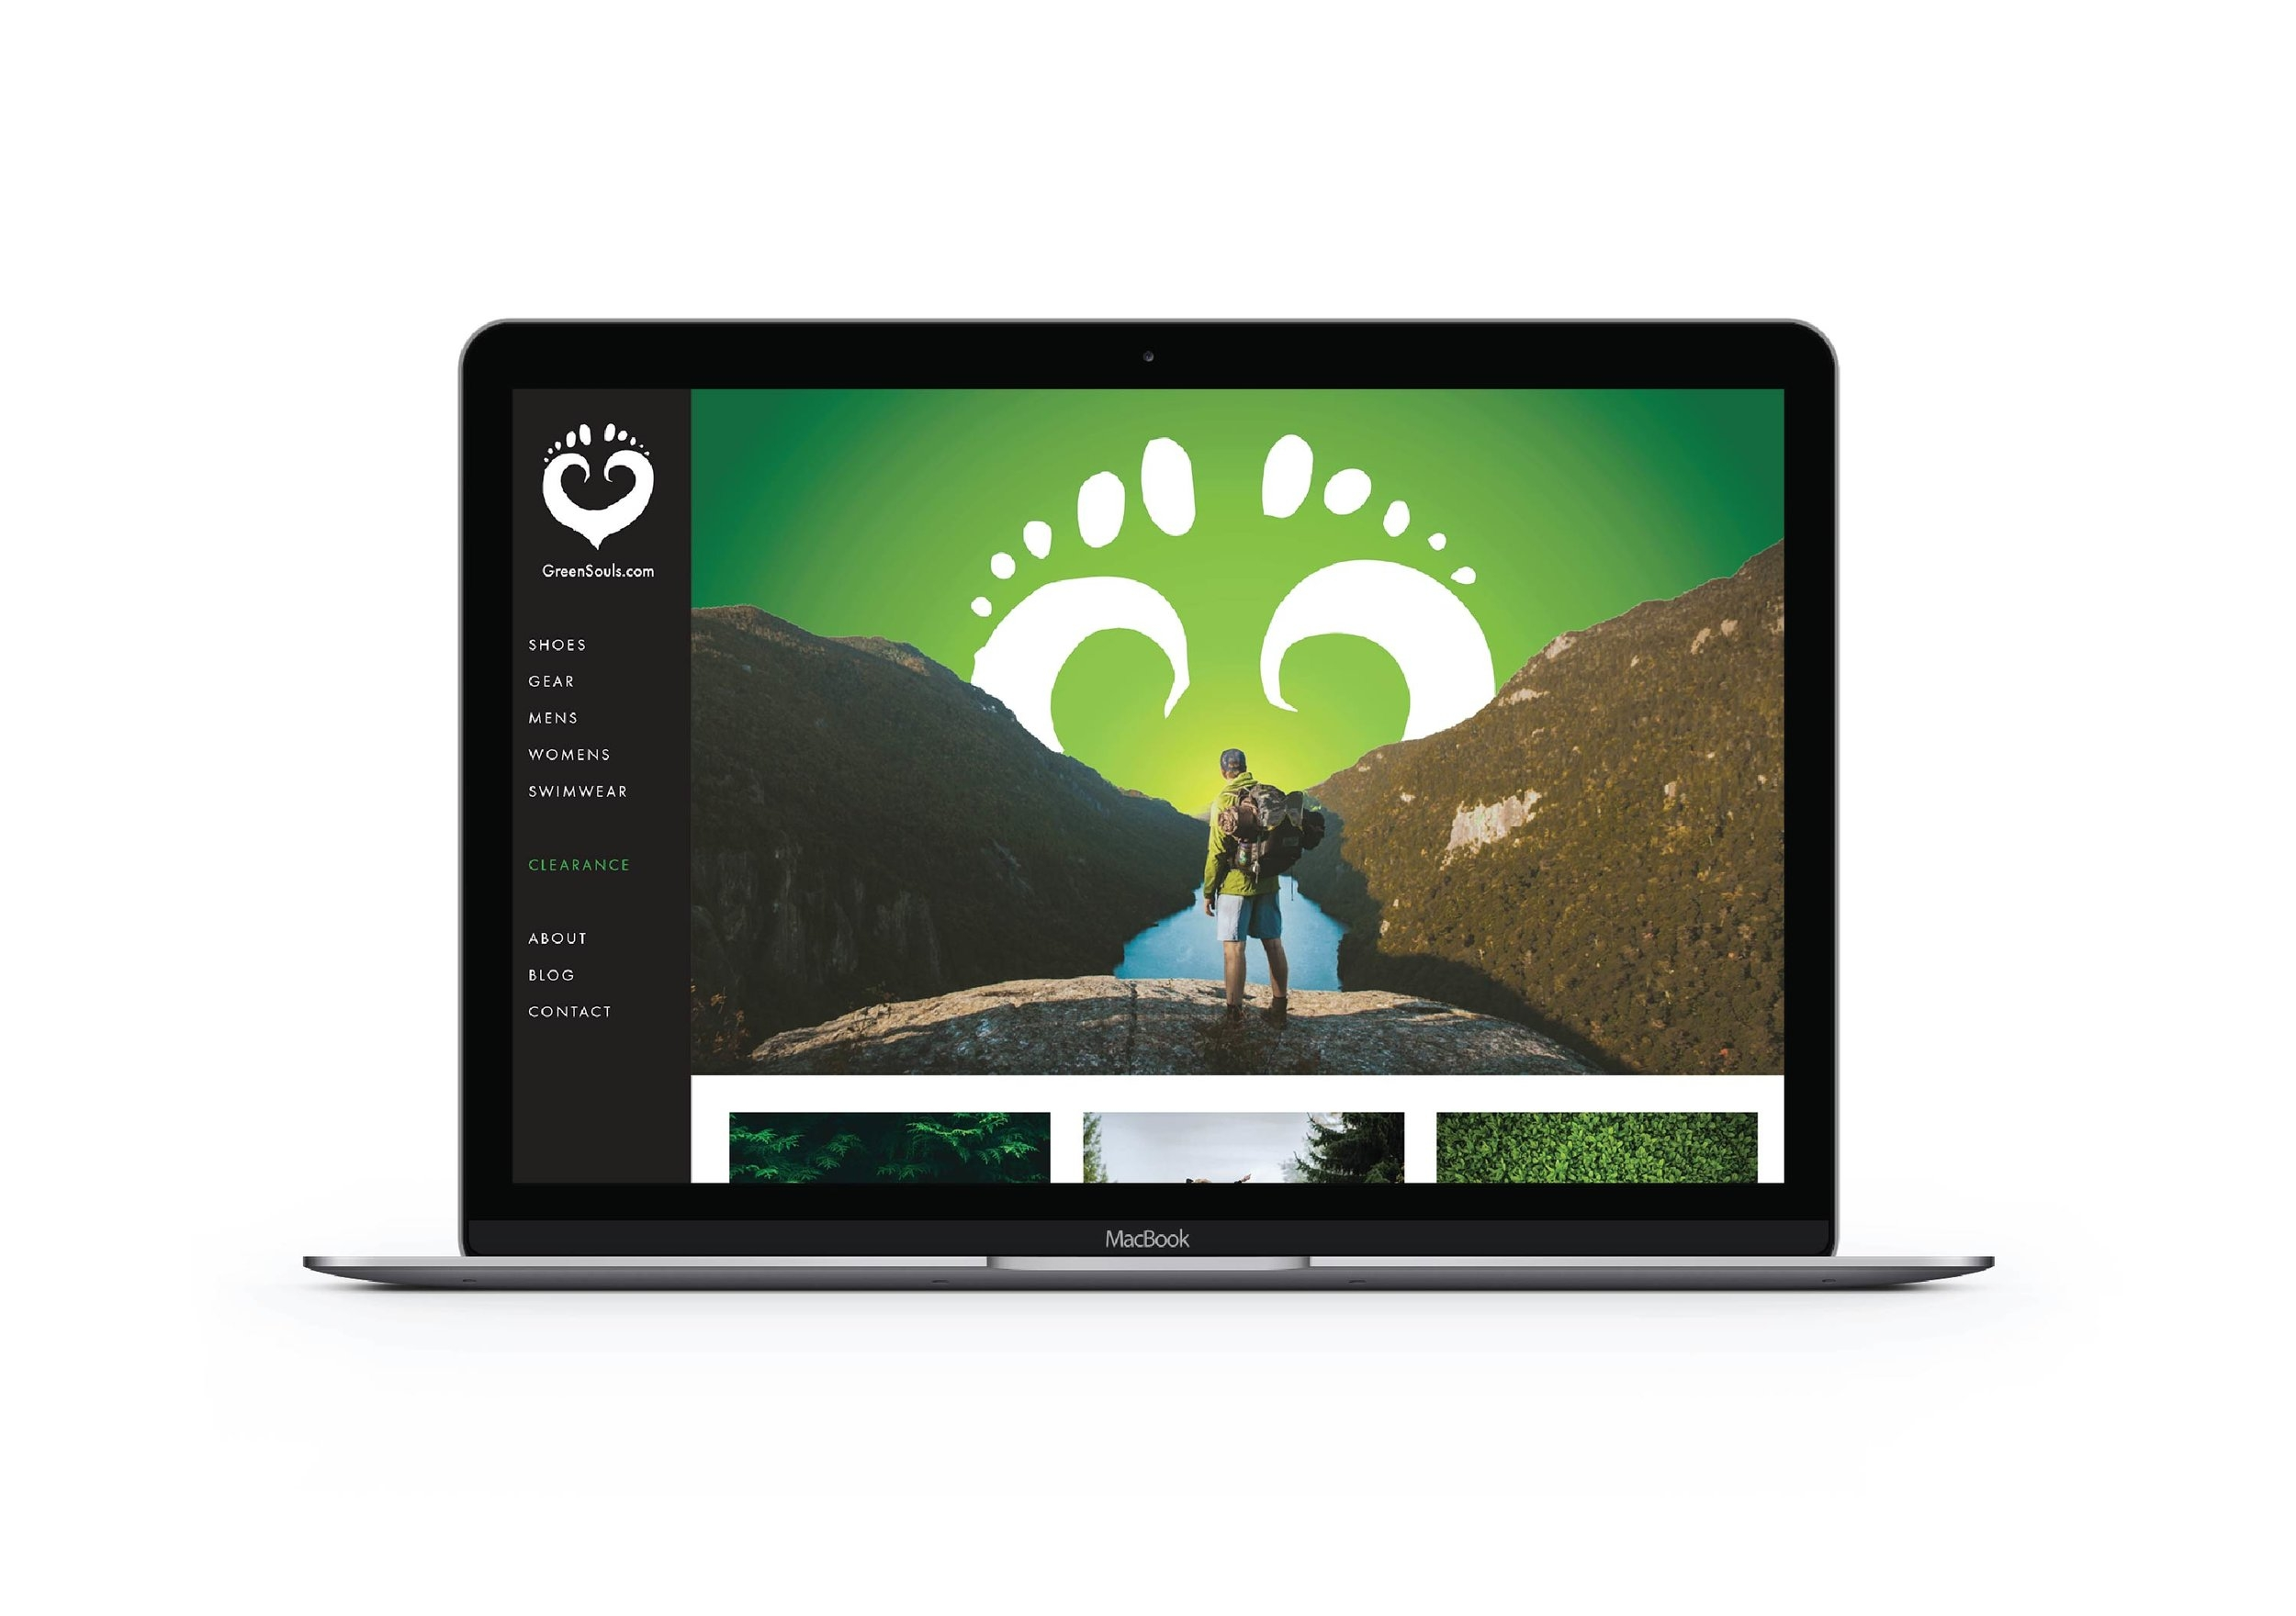 I Designed My Dream Client's Website - Identity & web design fro greensouls.com (Fictional work)